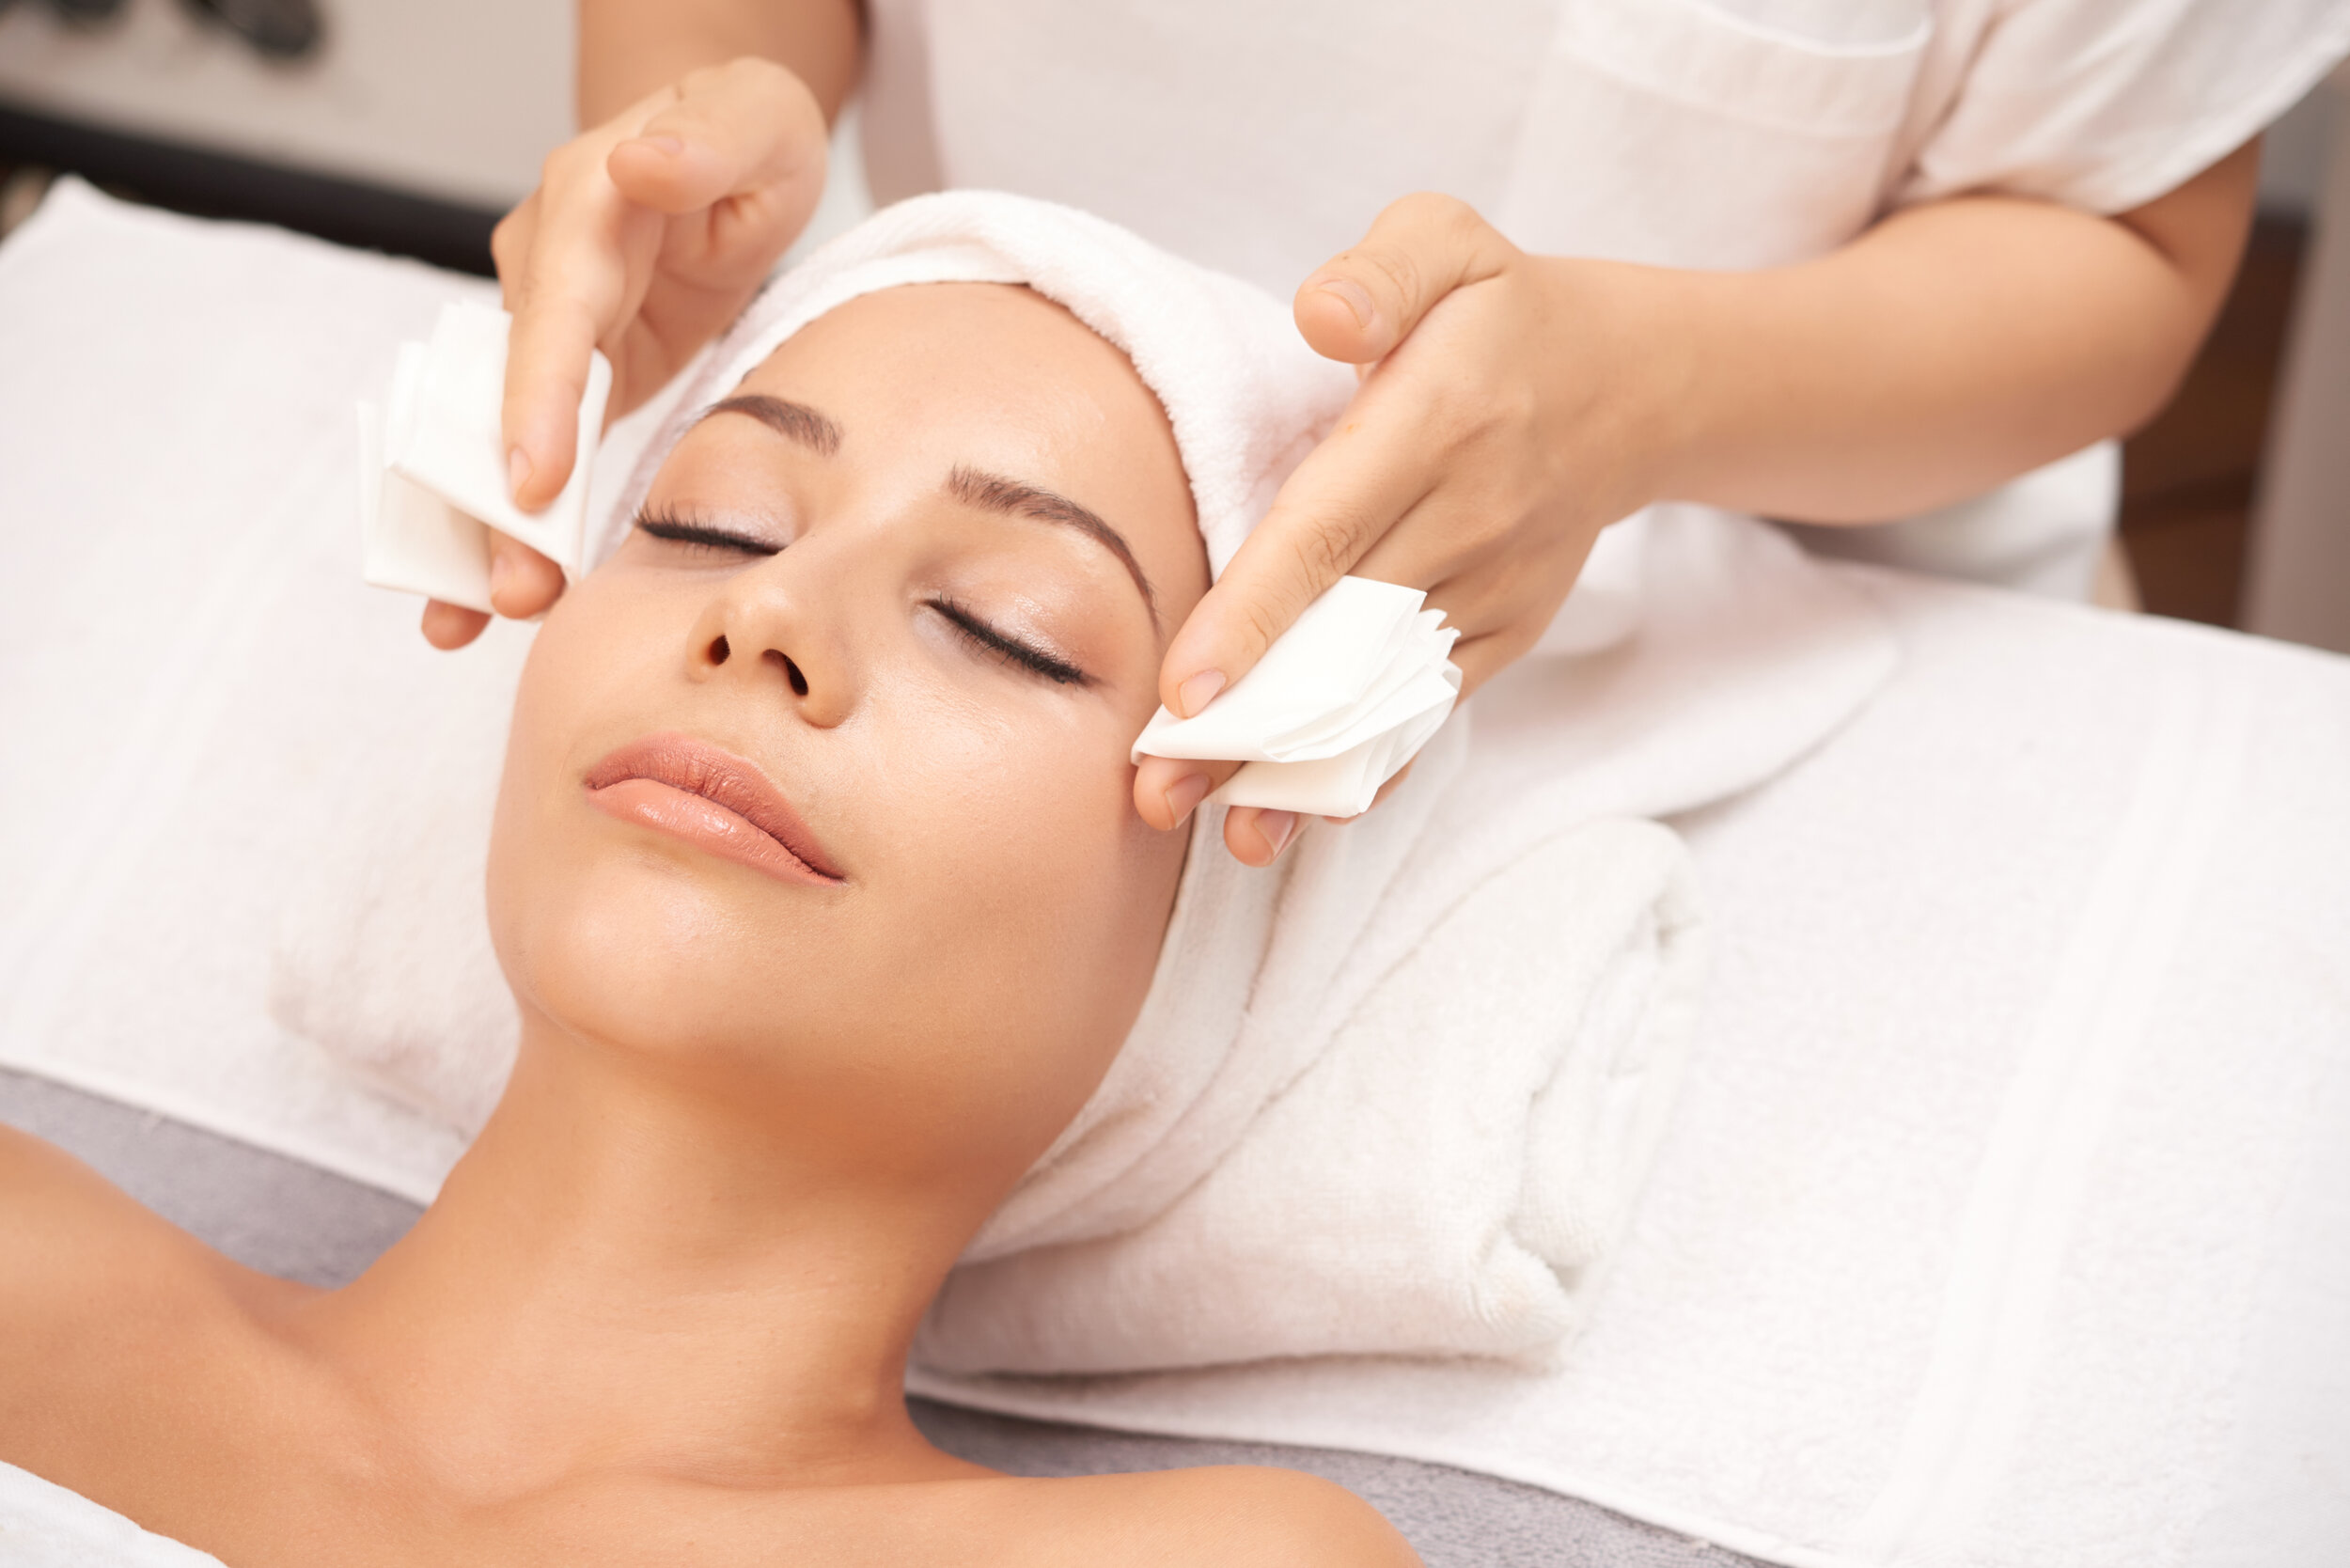 Beauty Services - We offer a variety of professional waxing services, eyebrow tinting, soothing facials, and product consultations in our modern salon.